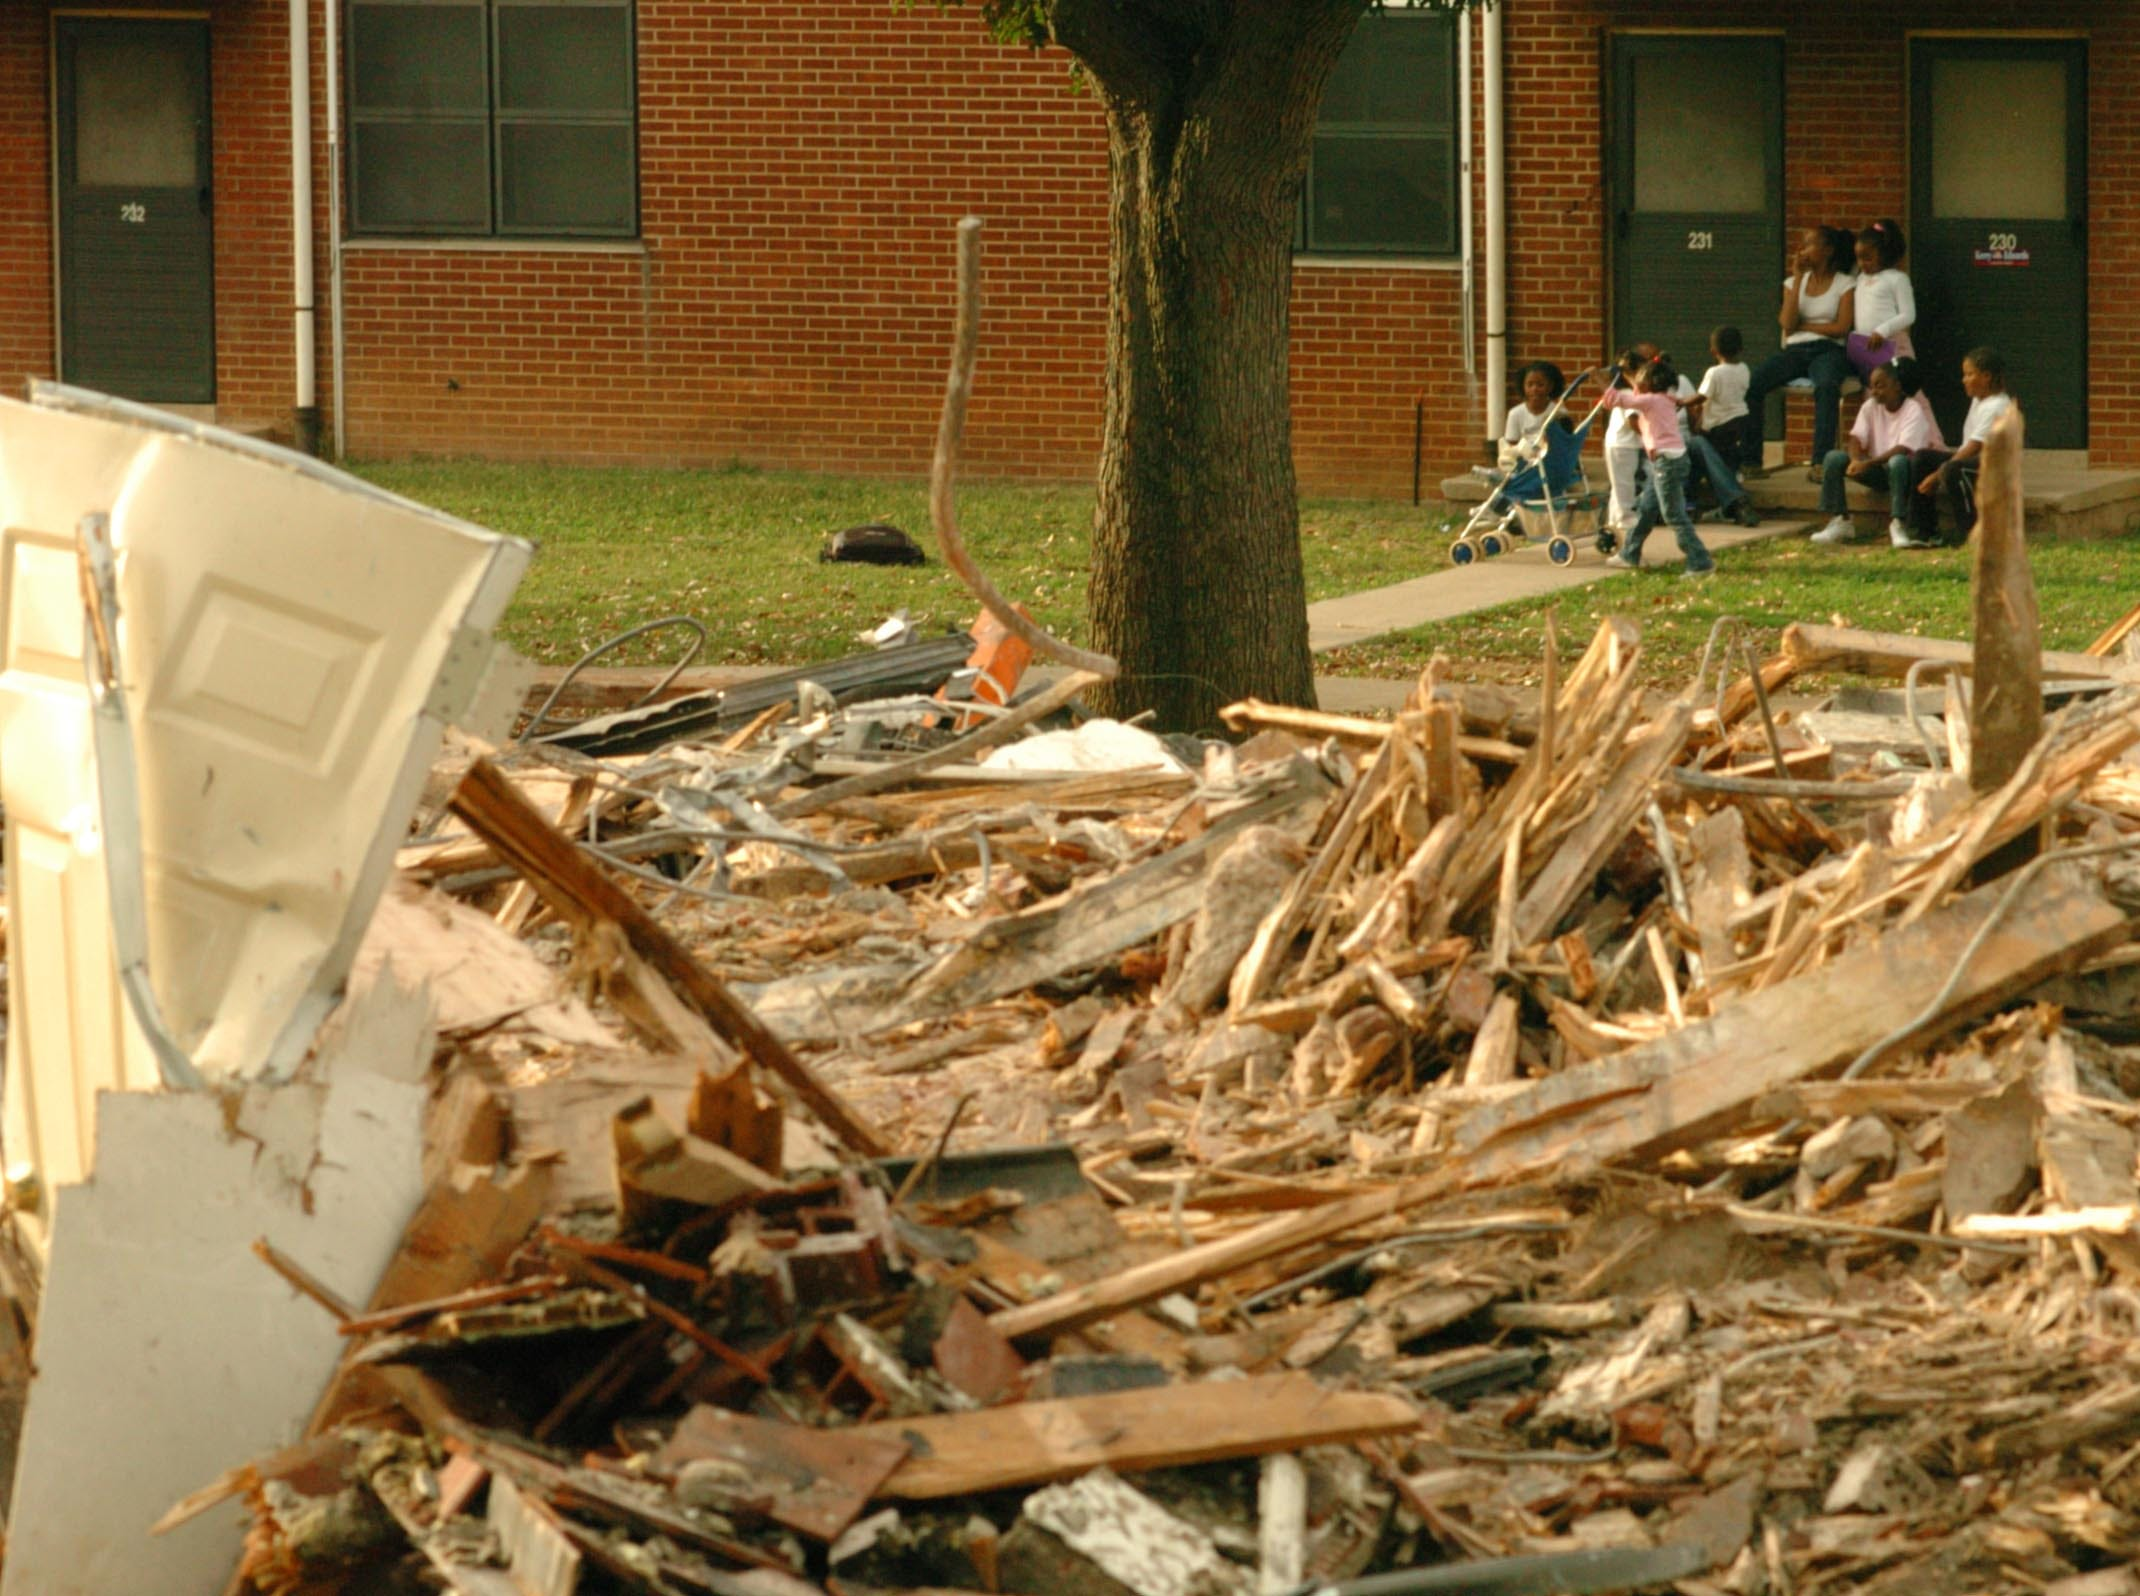 Austin Home residents sit outside one of the buildings near where some of the older Austin Homes buildings are being torn down on October, 11, 2004.